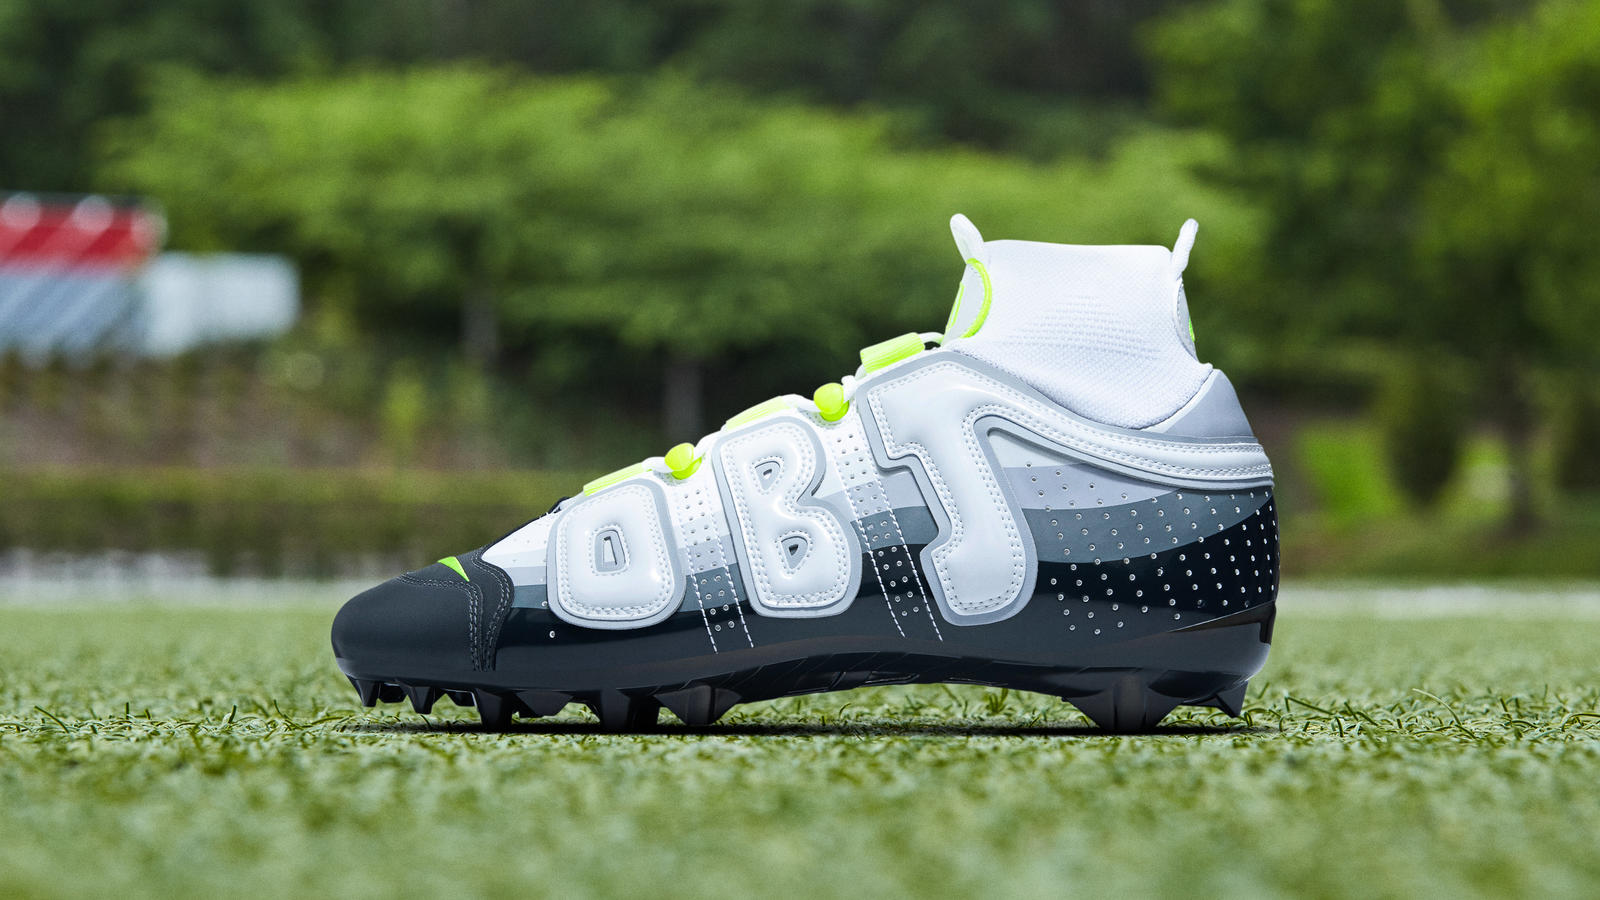 OBJ Air Force 1 Utility Cleat Nike News